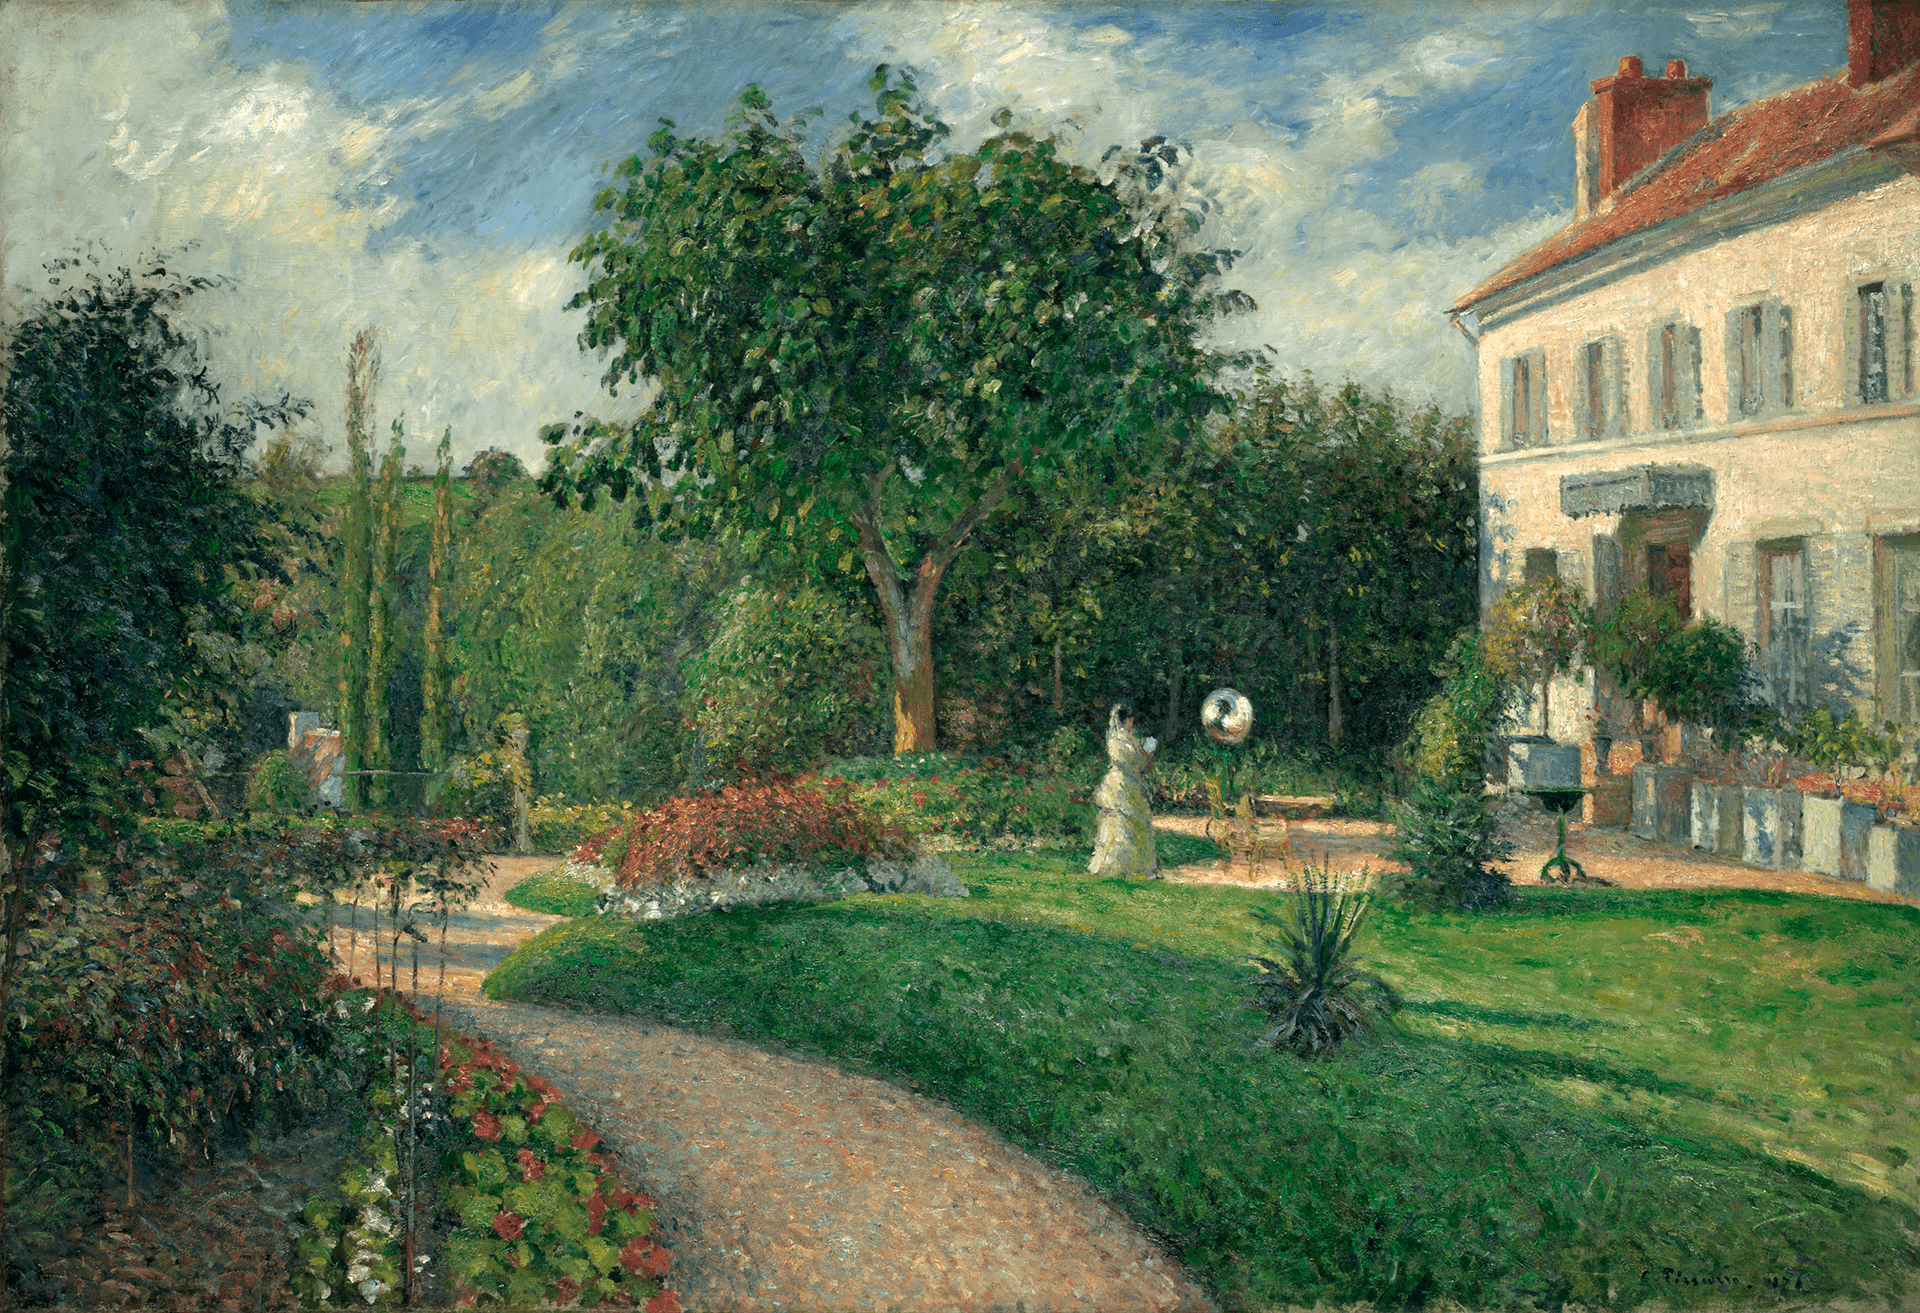 A path leads through a blooming garden. A white house is at the right and a woman stands before it